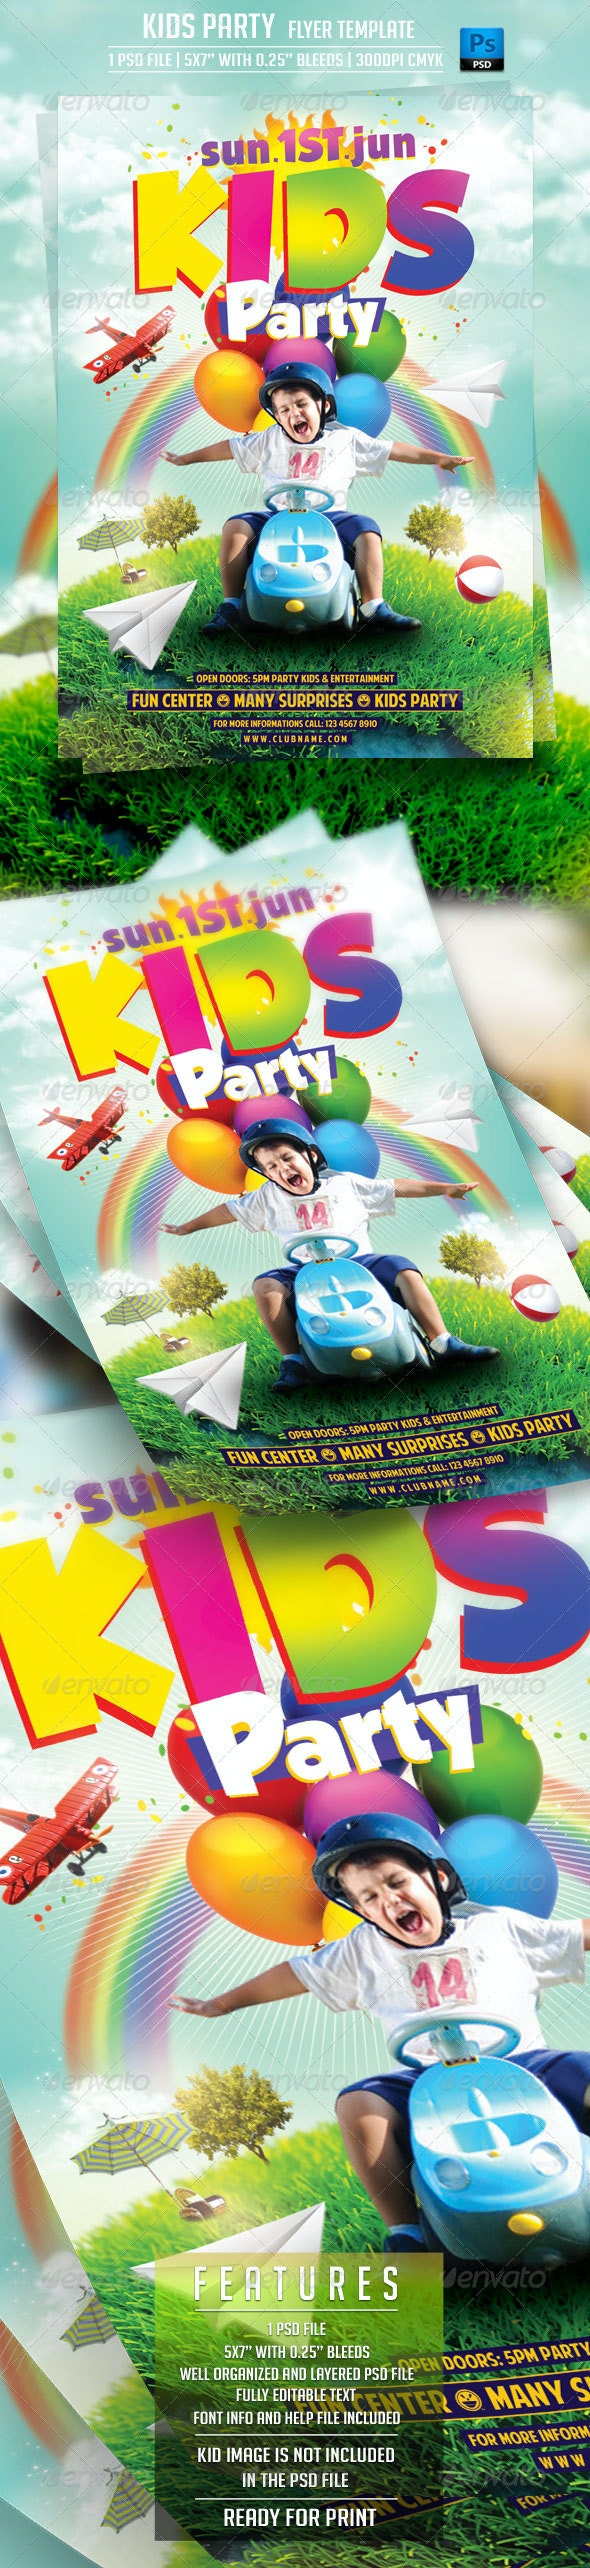 Kids Party Flyer Template - Flyers Print Templates